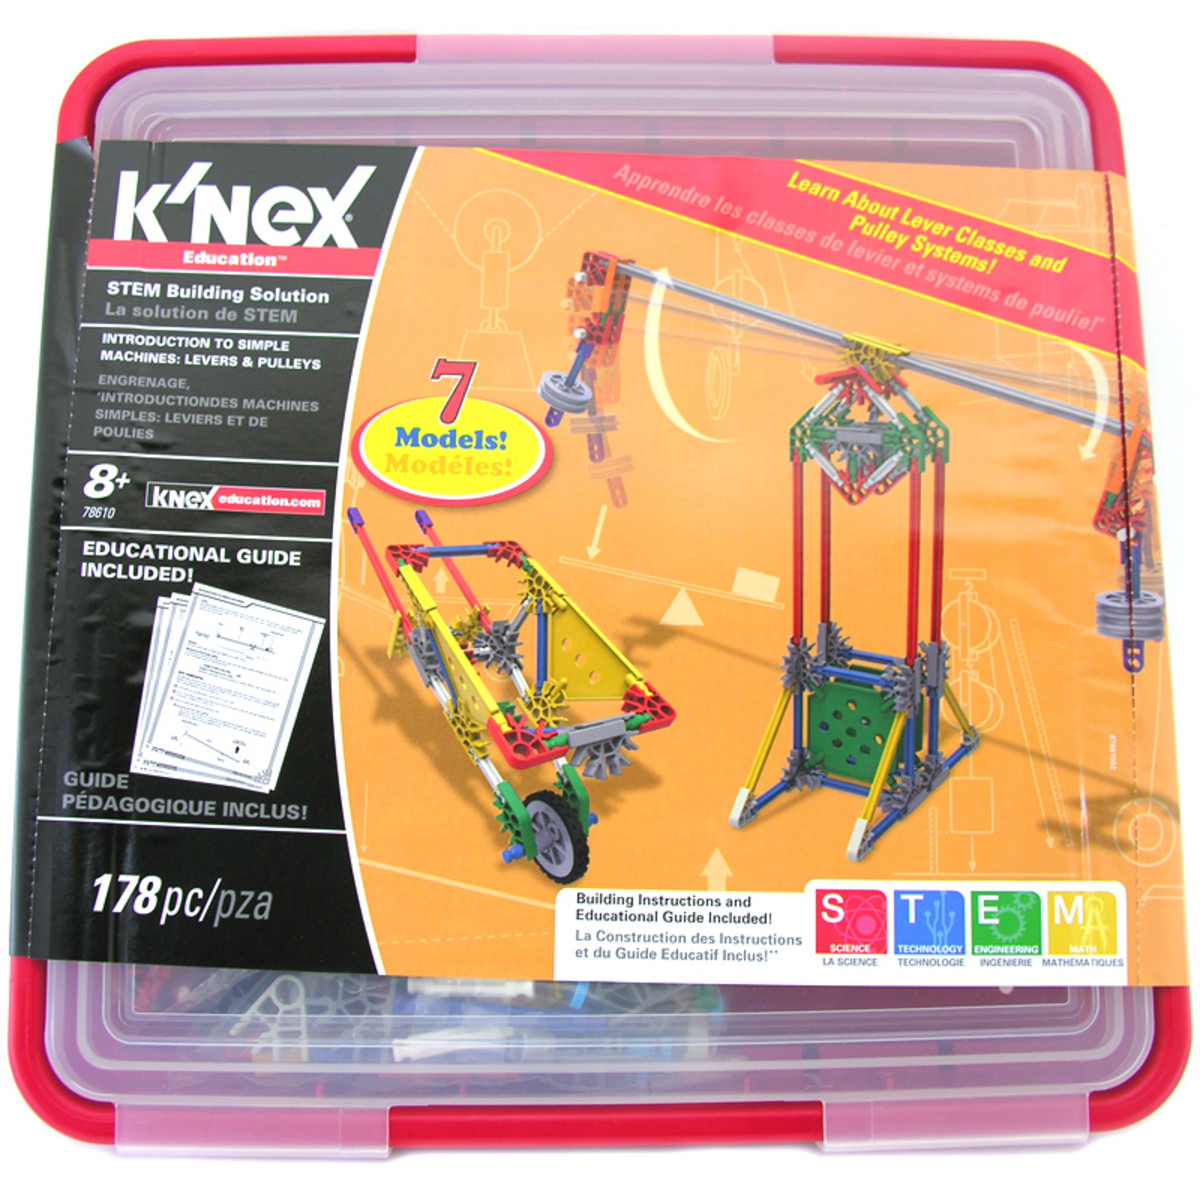 K'NEX Education - Intro To Simple Machines: Levers and Pulleys - Image credit: amazon.com